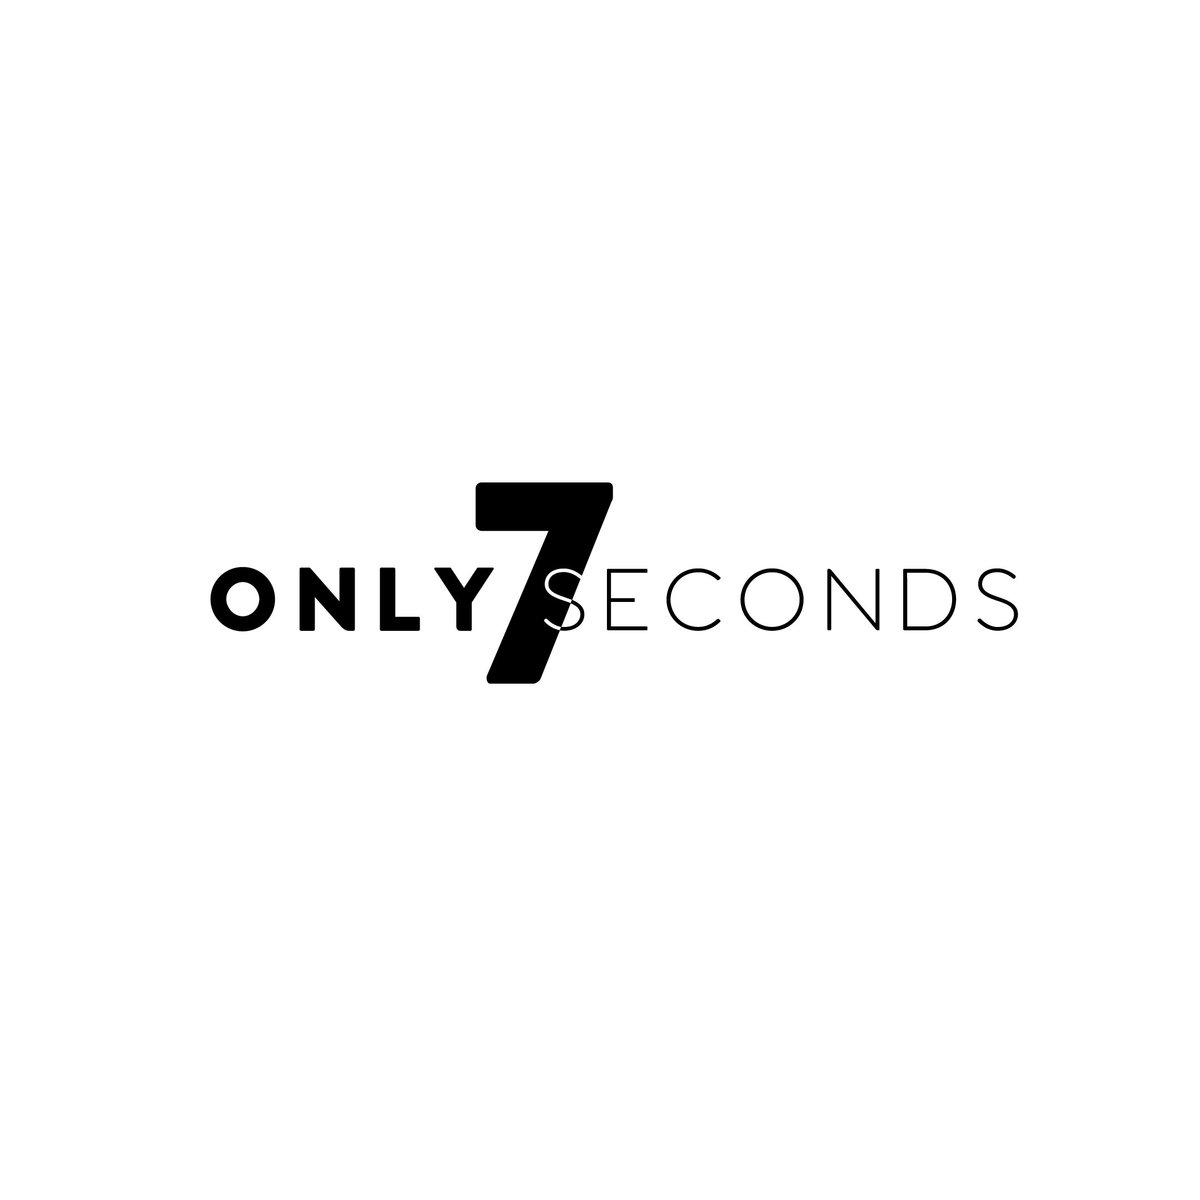 Only7Seconds-01